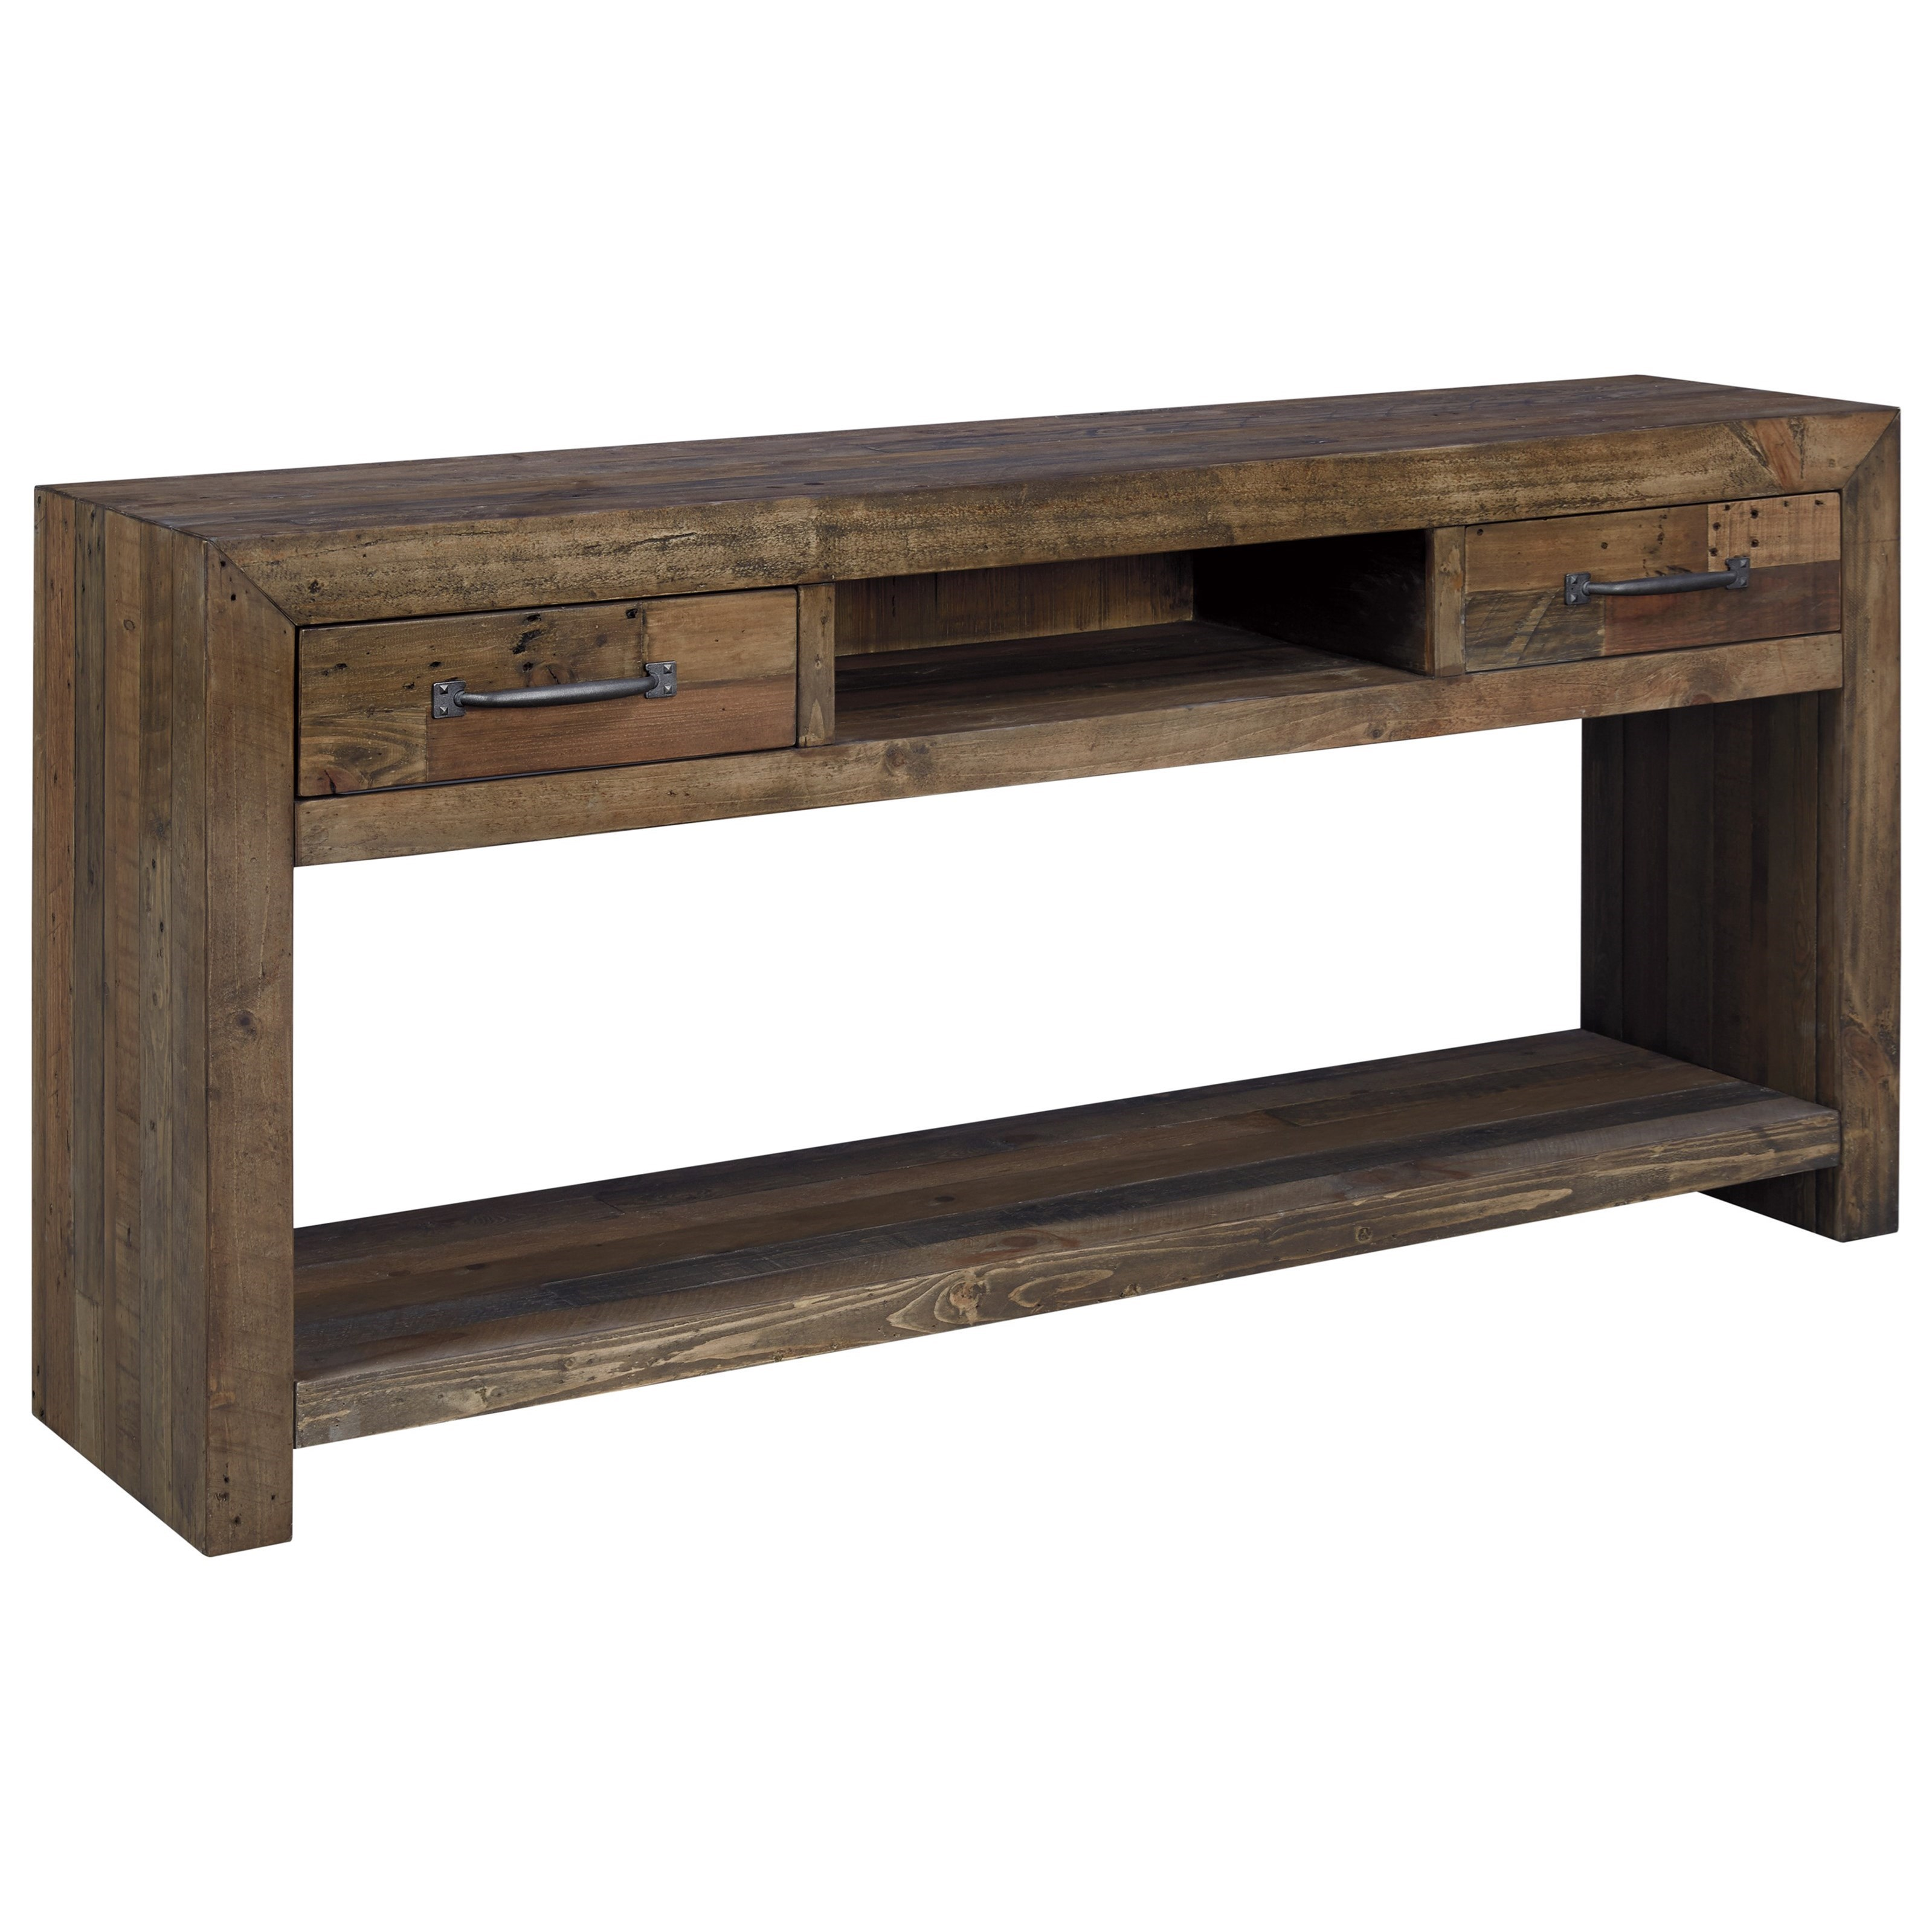 Ashley Signature Design Sommerford T975 4 Reclaimed Pine Sofa Table Dunk Bright Furniture